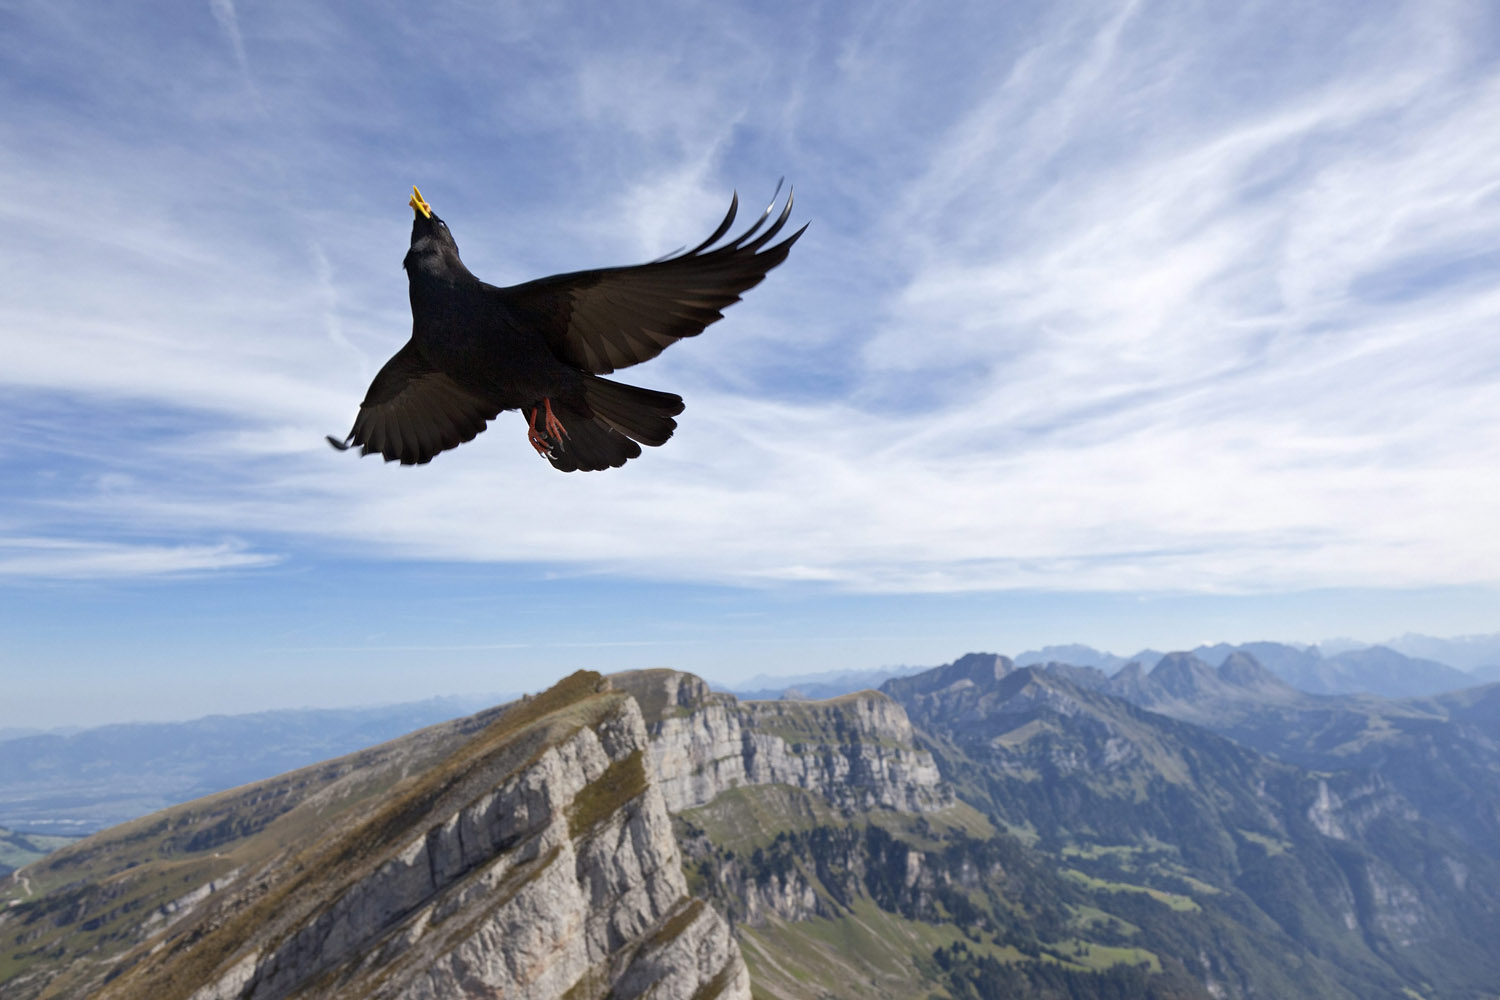 Sept. 18, 2012. A Pyrrhocorax graculus (Bergdohle) flies above Wildhaus in the Grisons, Switzerland.